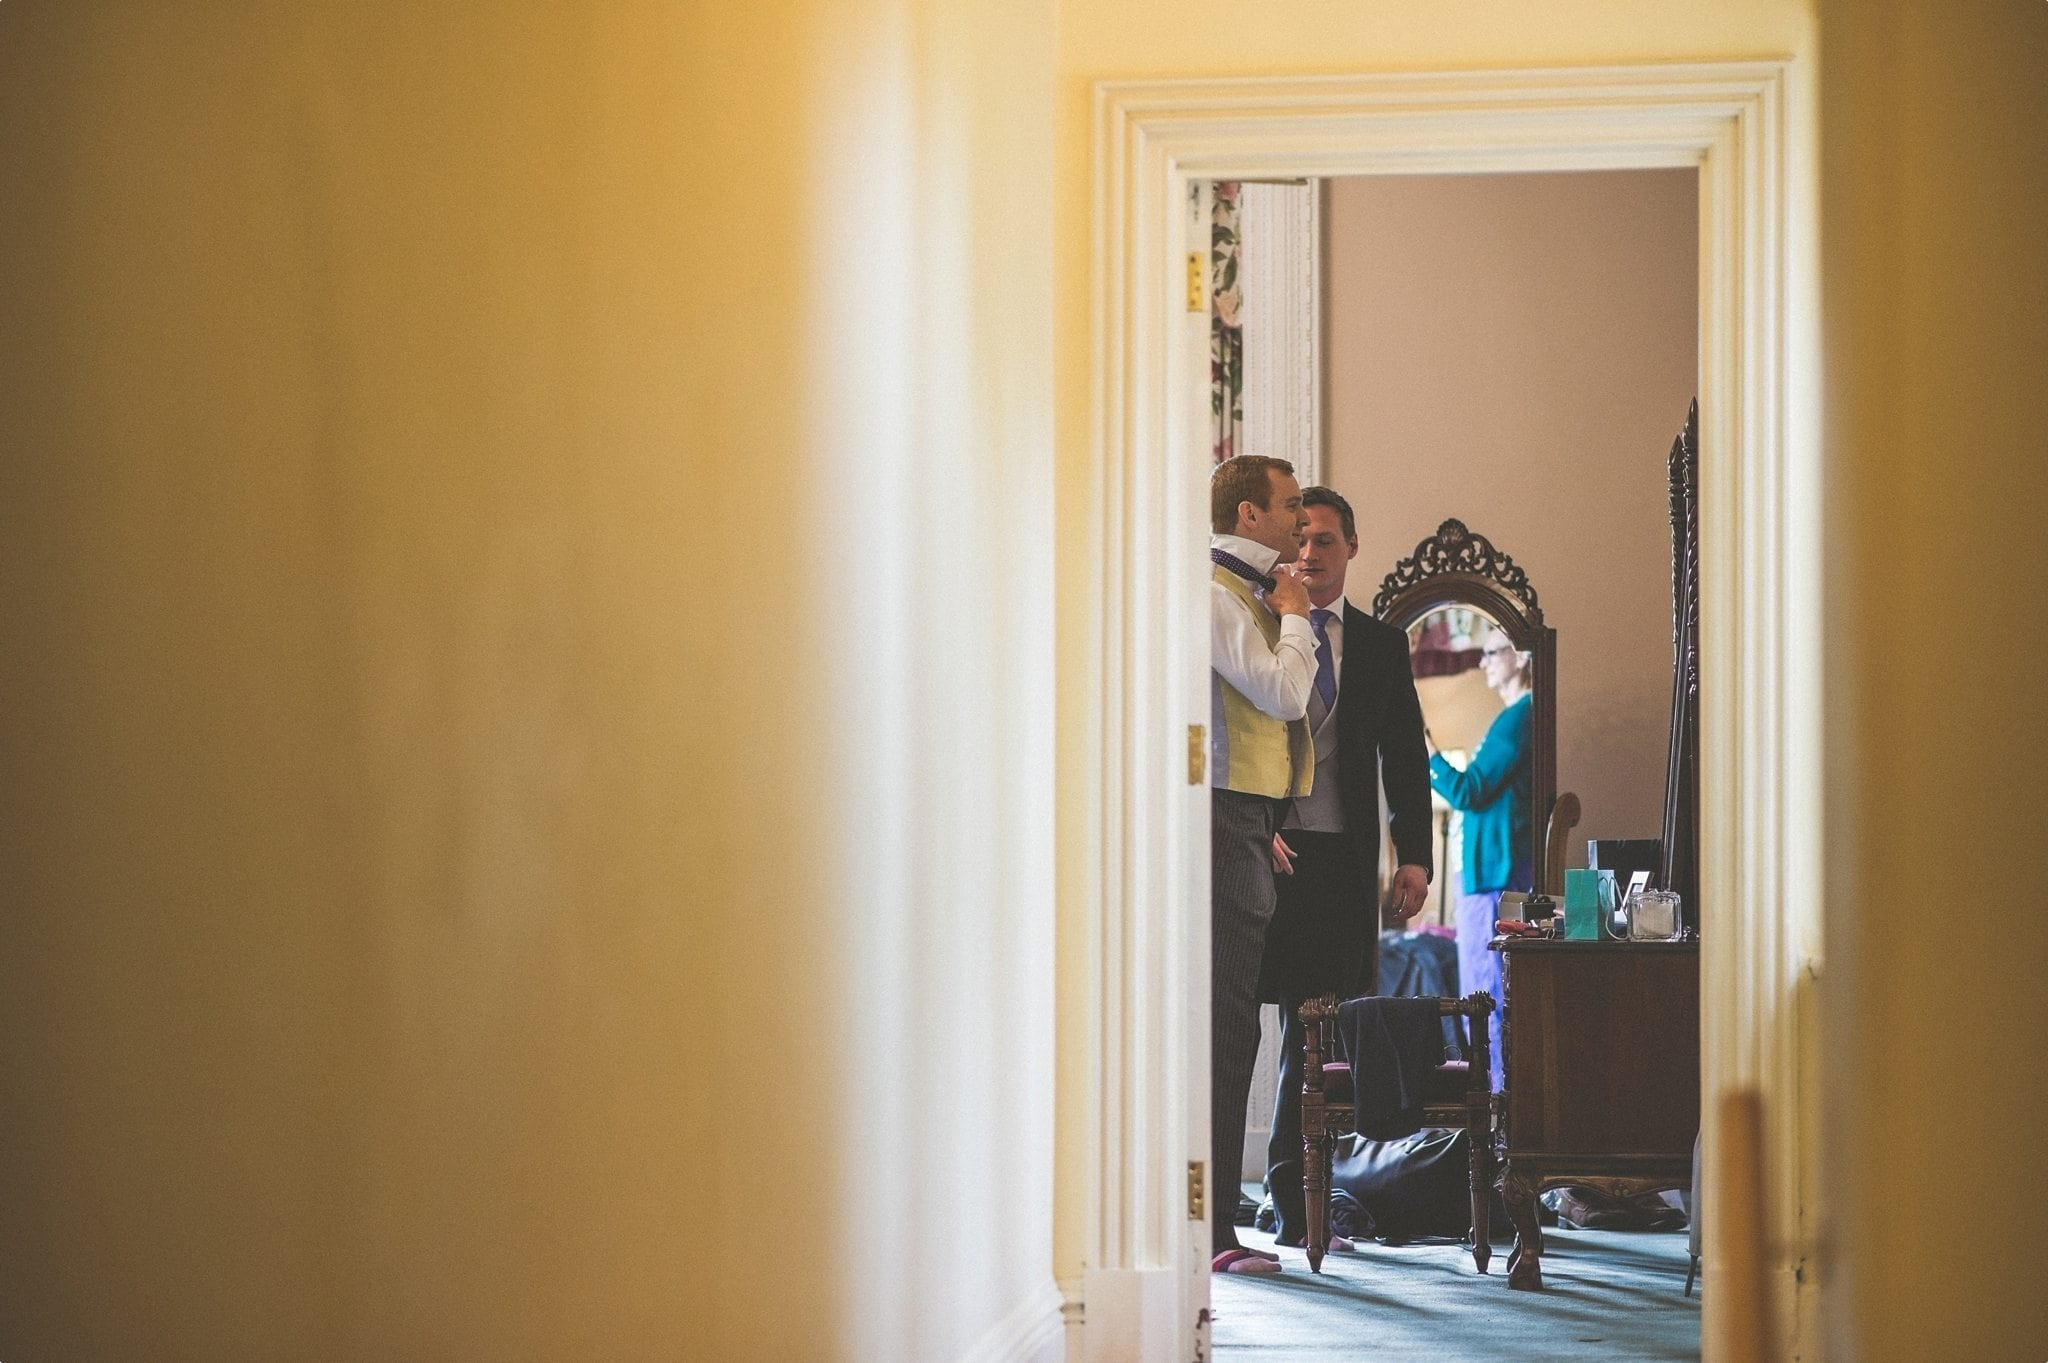 st-audries-park-wedding-maria-assia-photography-59